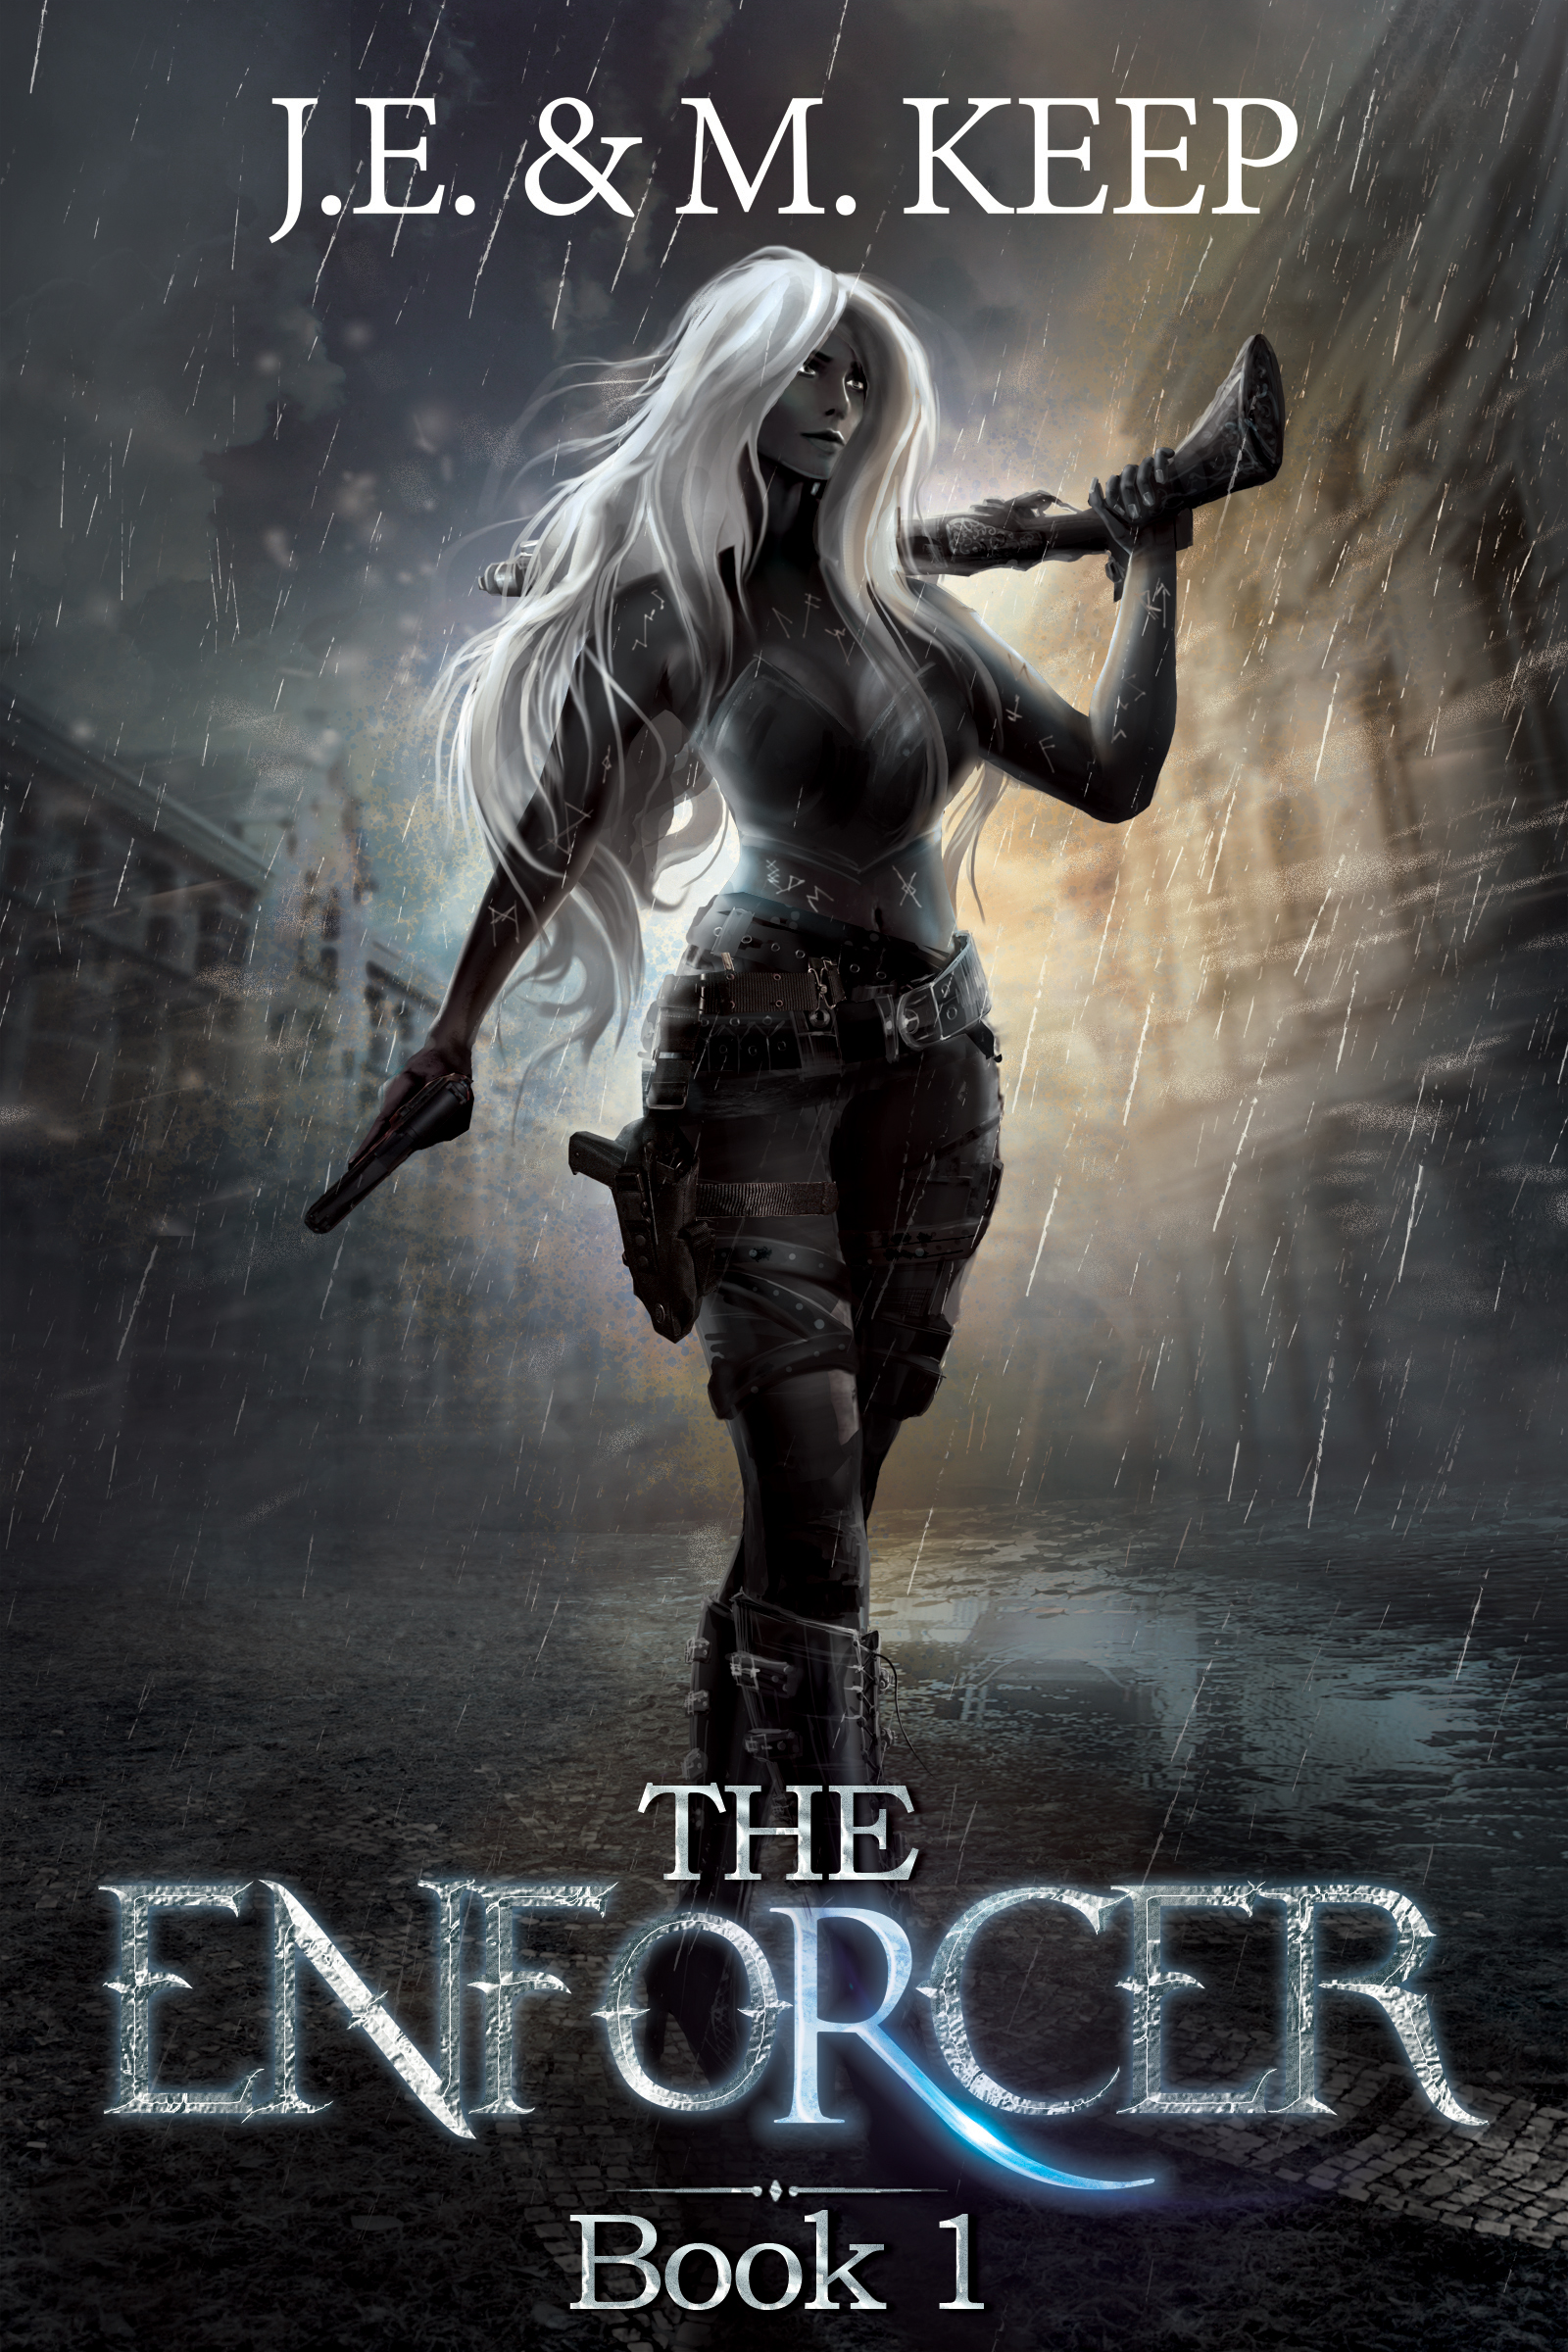 The Enforcer: Book 1